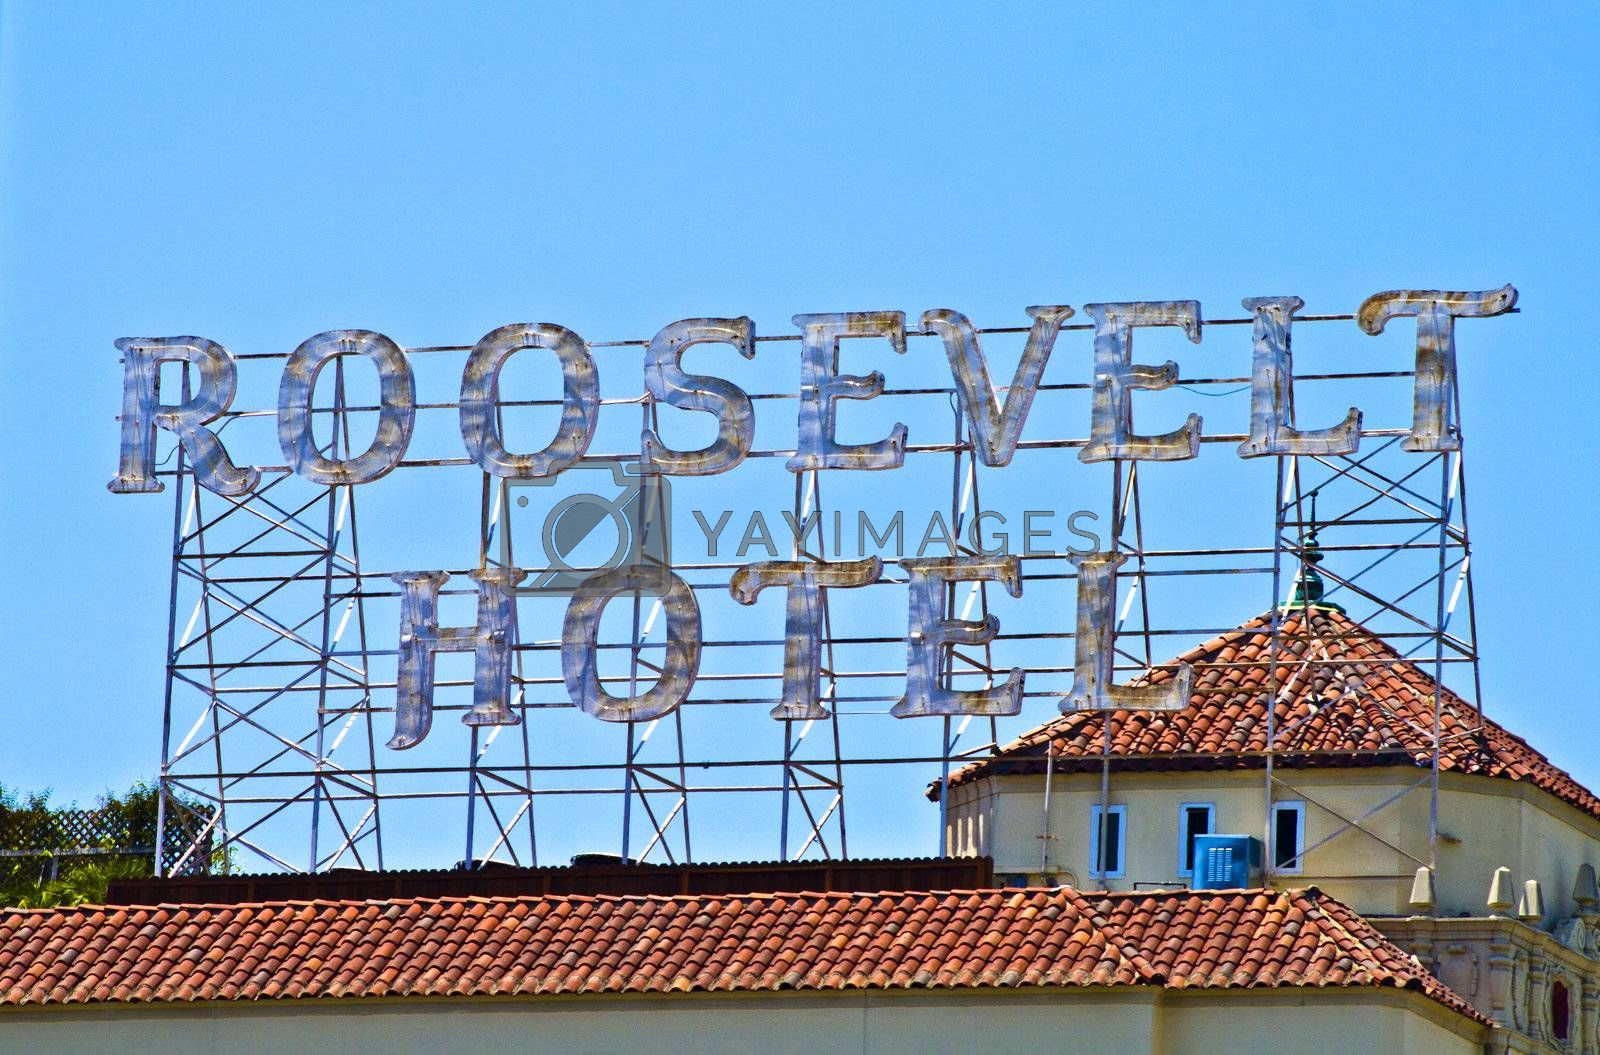 HOLYWOOD - JULY 05: Big letters on the roof show the people the place of the  famous Roosevelt Hotel in Holywood on July 05, 2008 in Hilywood, USA.